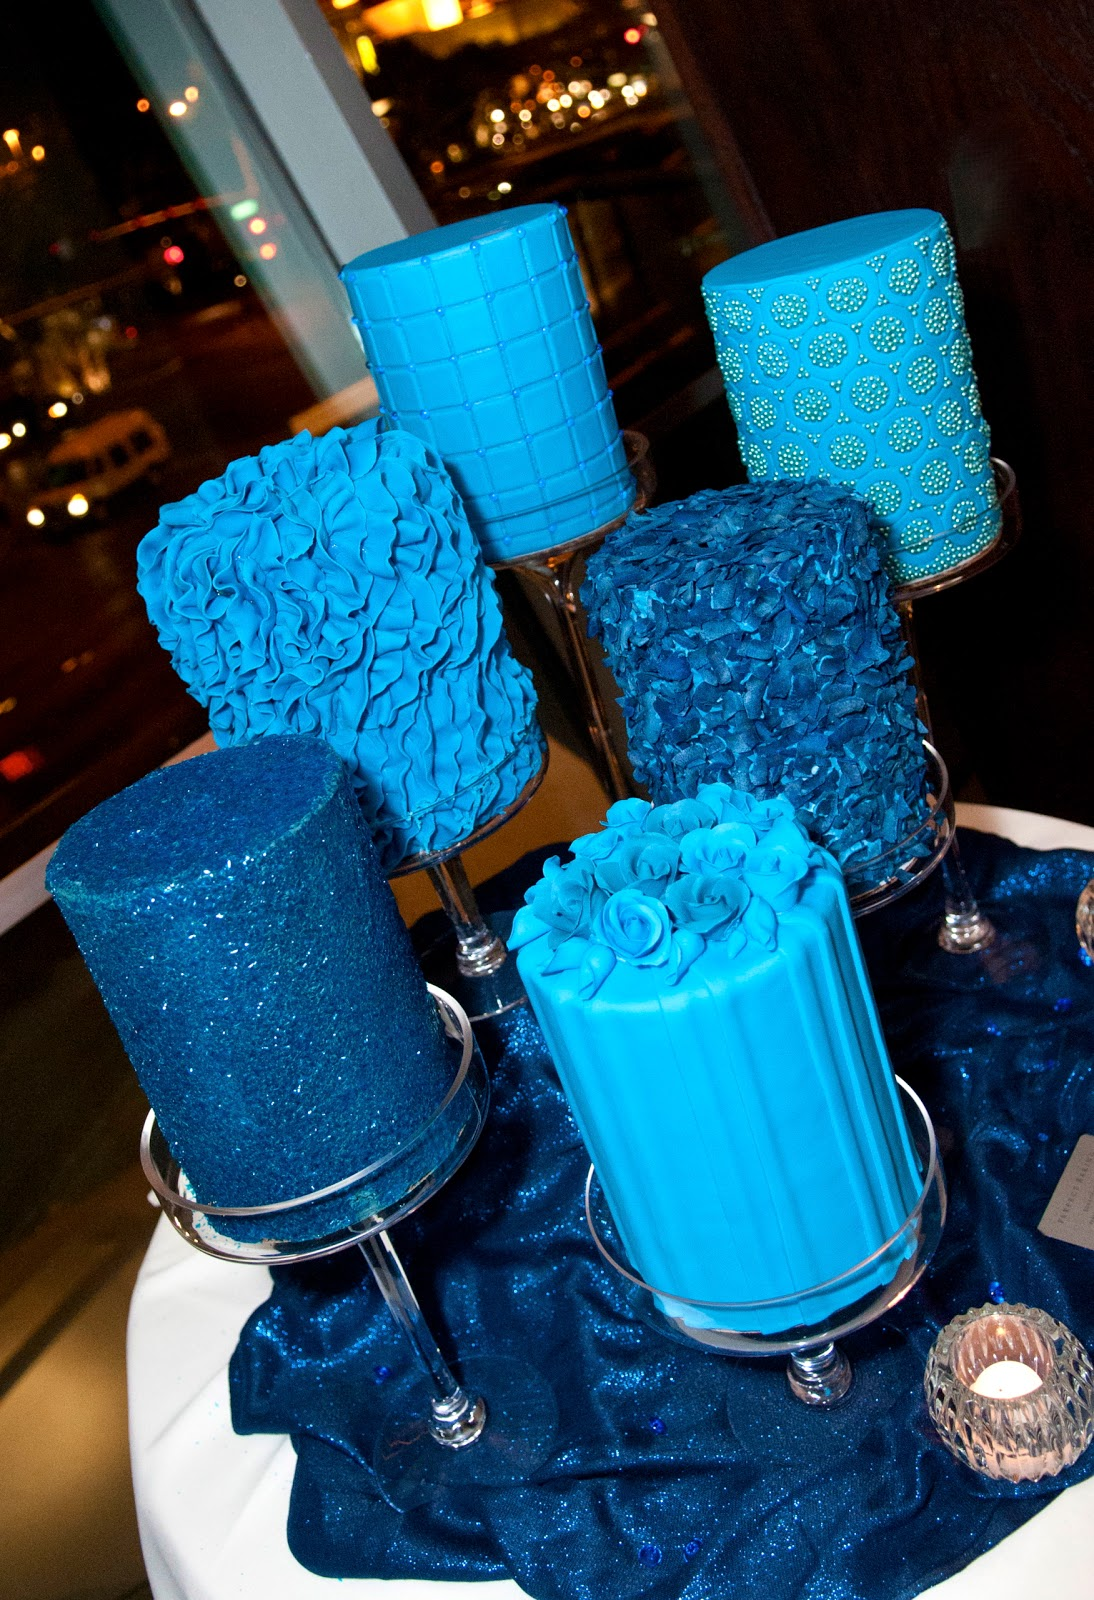 The Unexpected Culinarian Blue Wedding Cake s